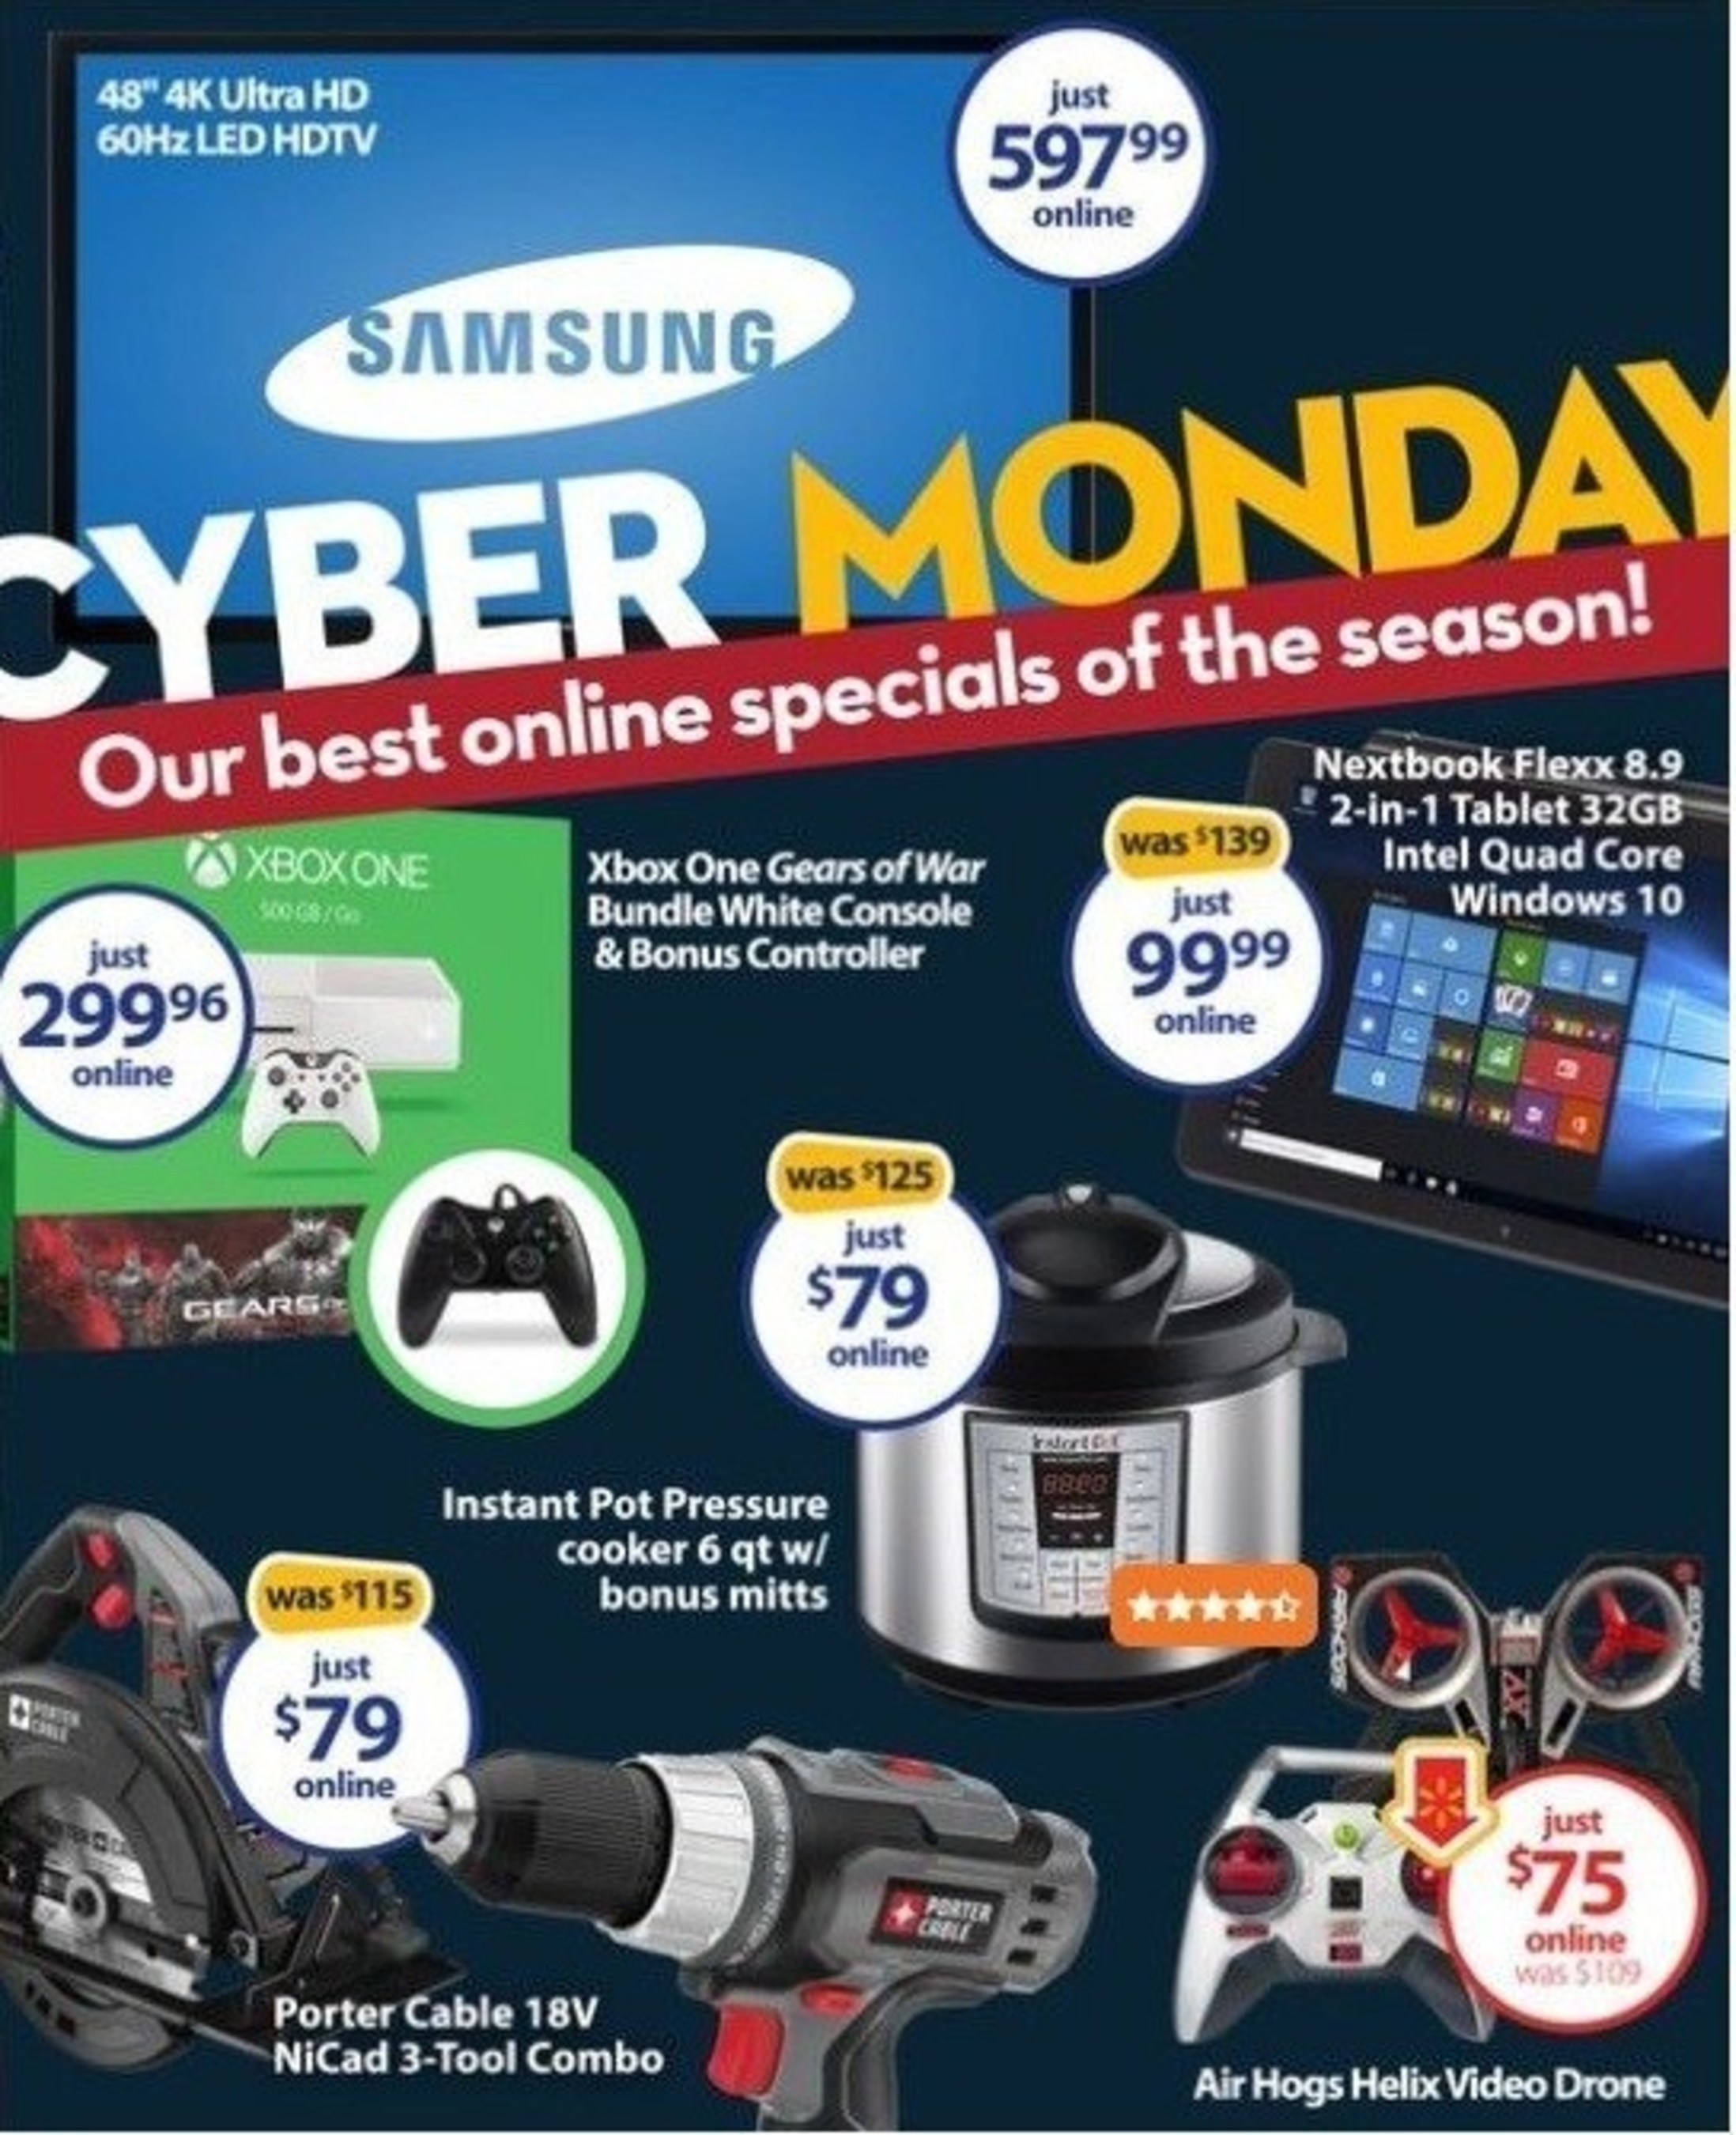 Cyber Monday TV Deals 2015: Hideal.net Offers 3 Main Keys to Save Effectively